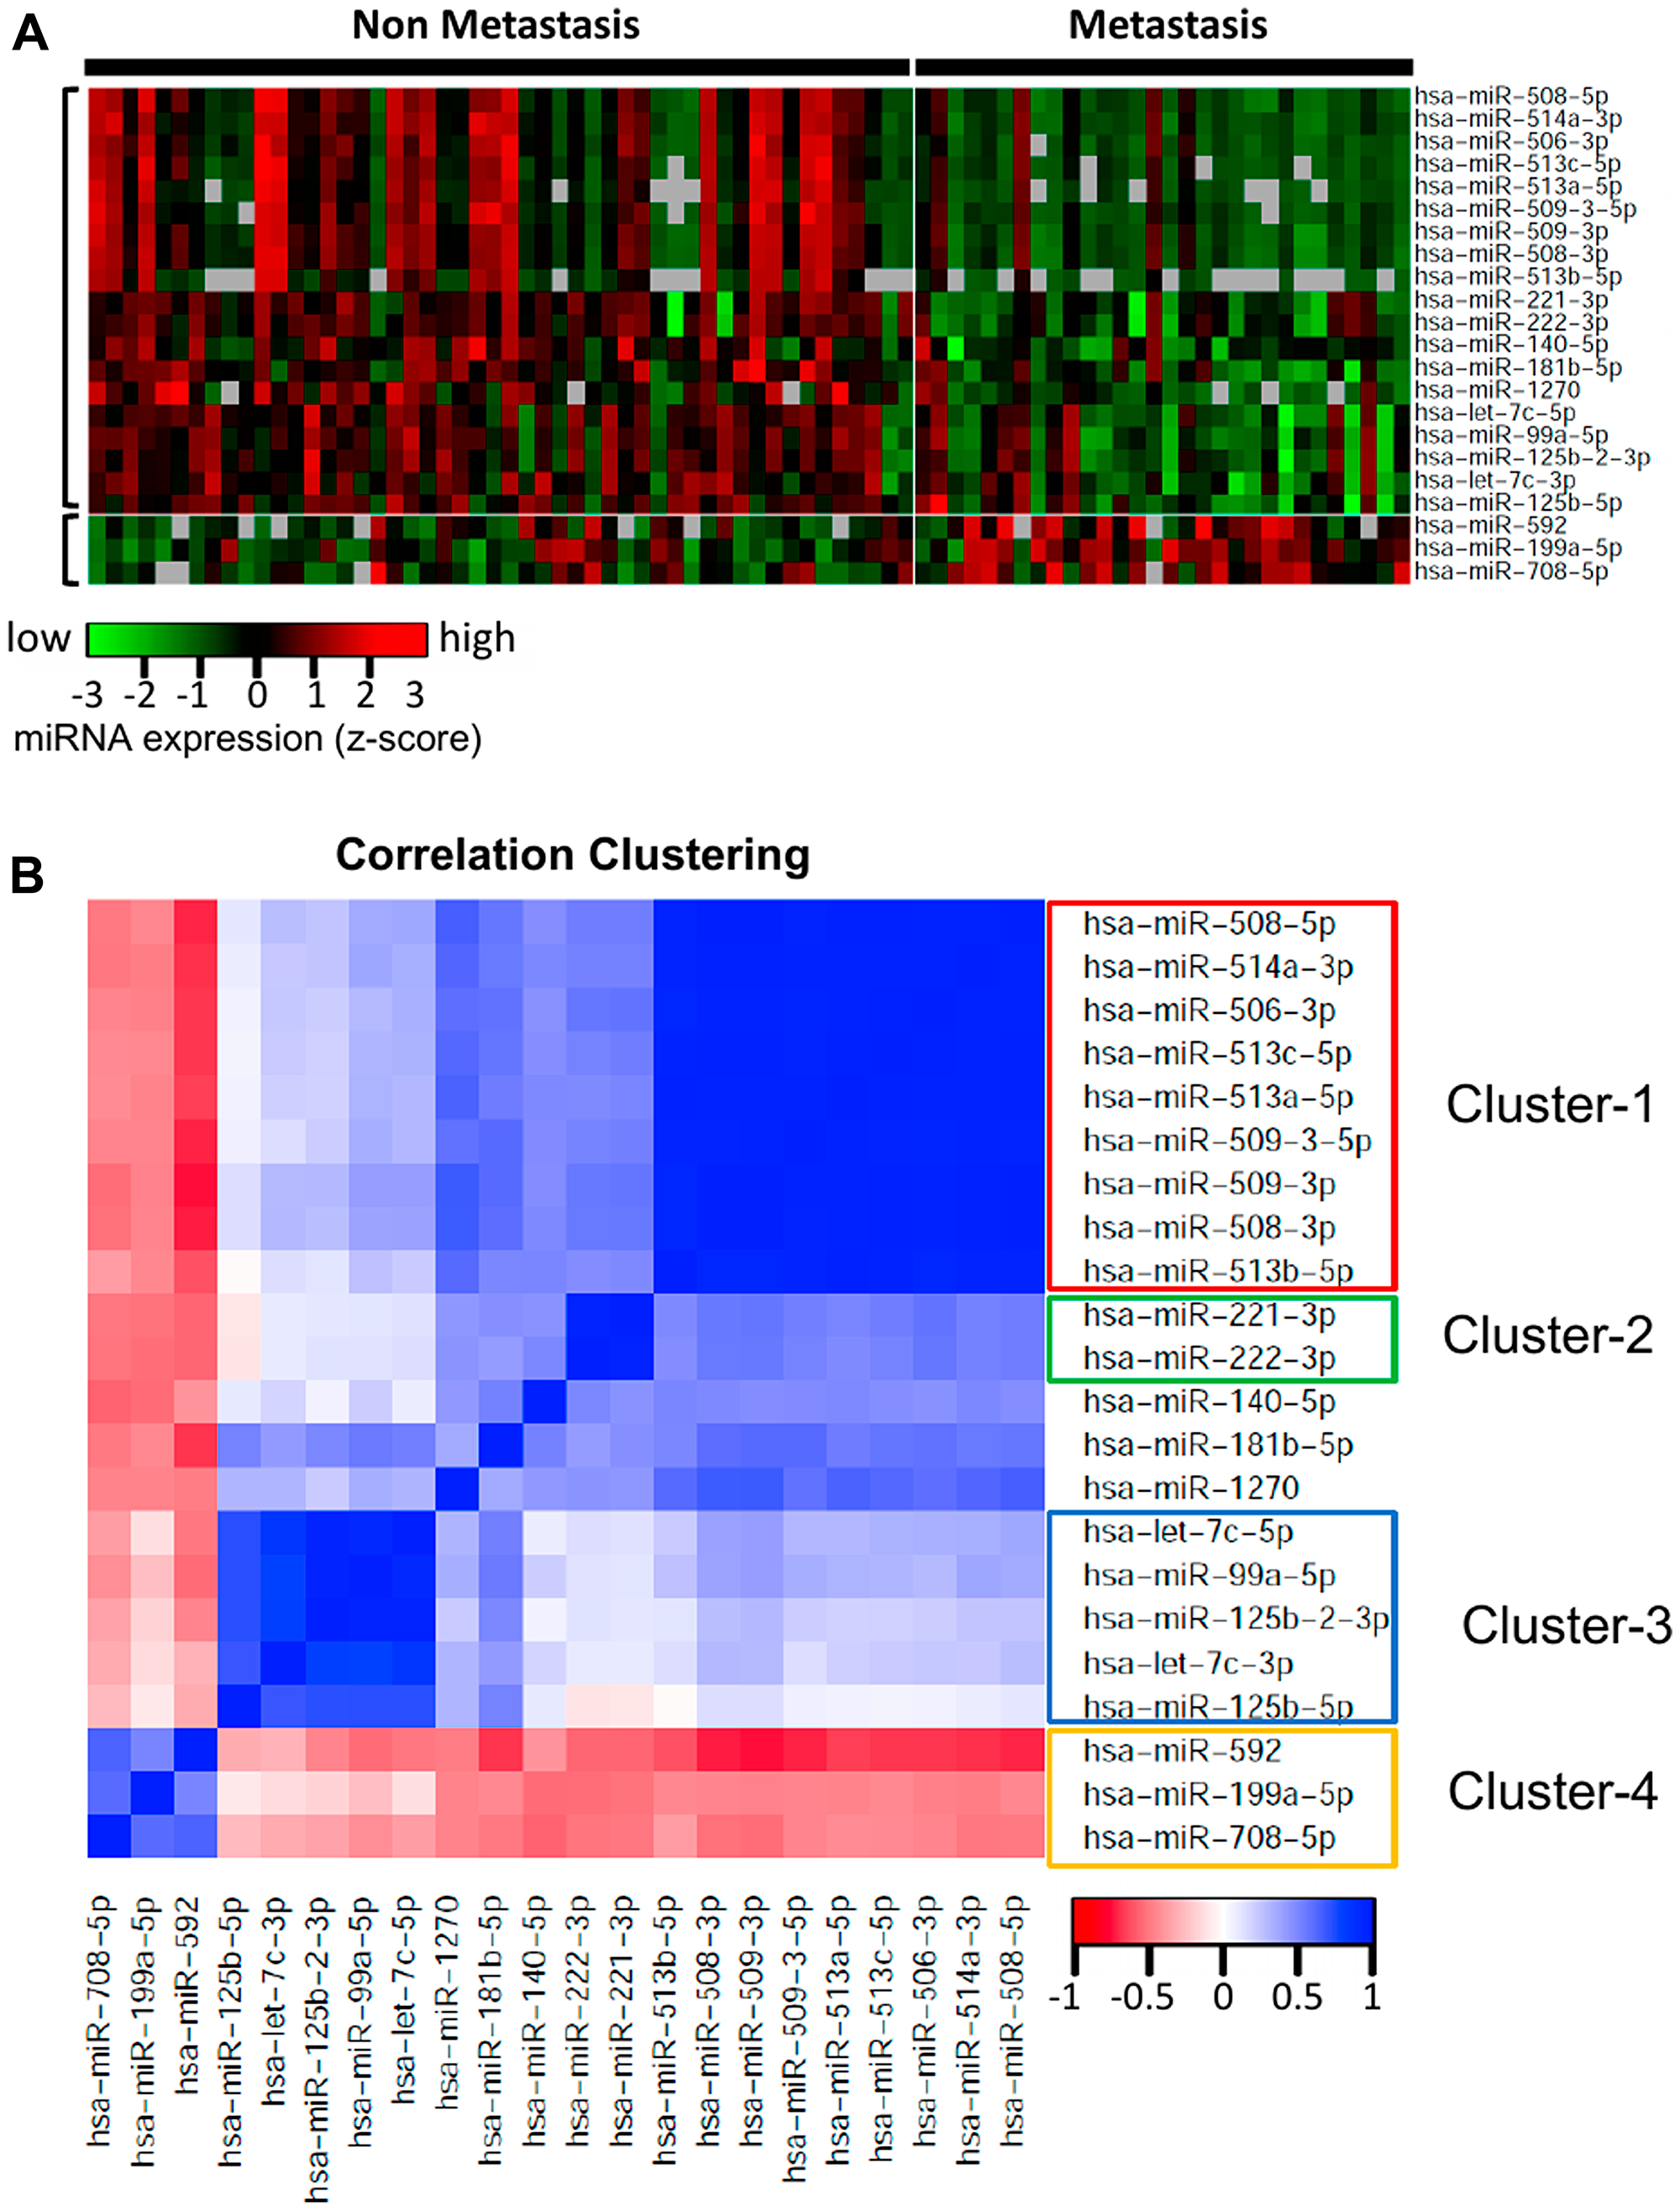 Heatmap and correlation clustering of the miRNAs significantly differentially expressed with respect to ever-development of metastatic UM.